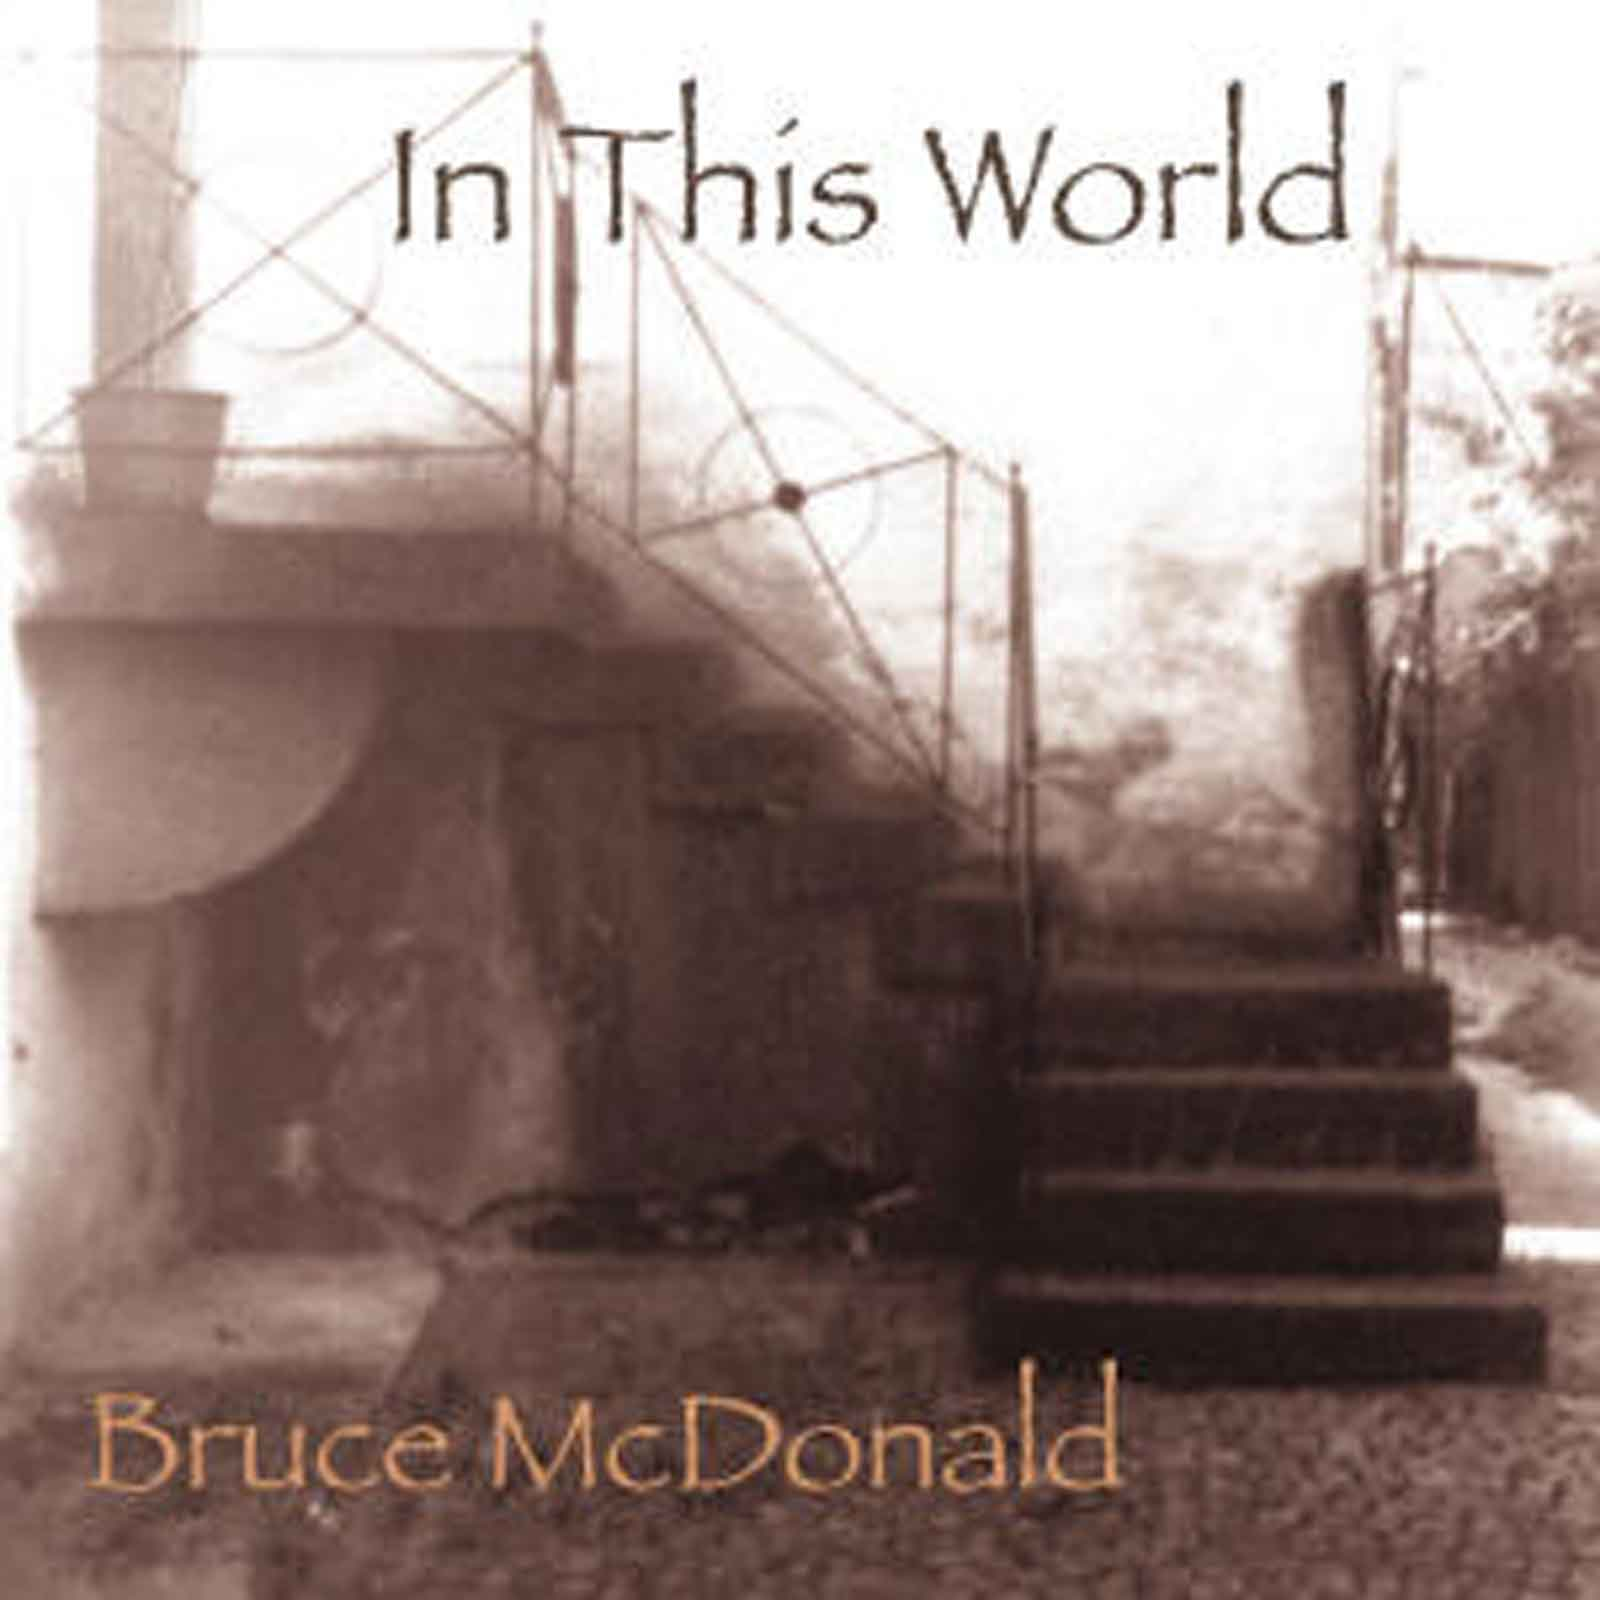 Bruce McDonald - In This World - 2004